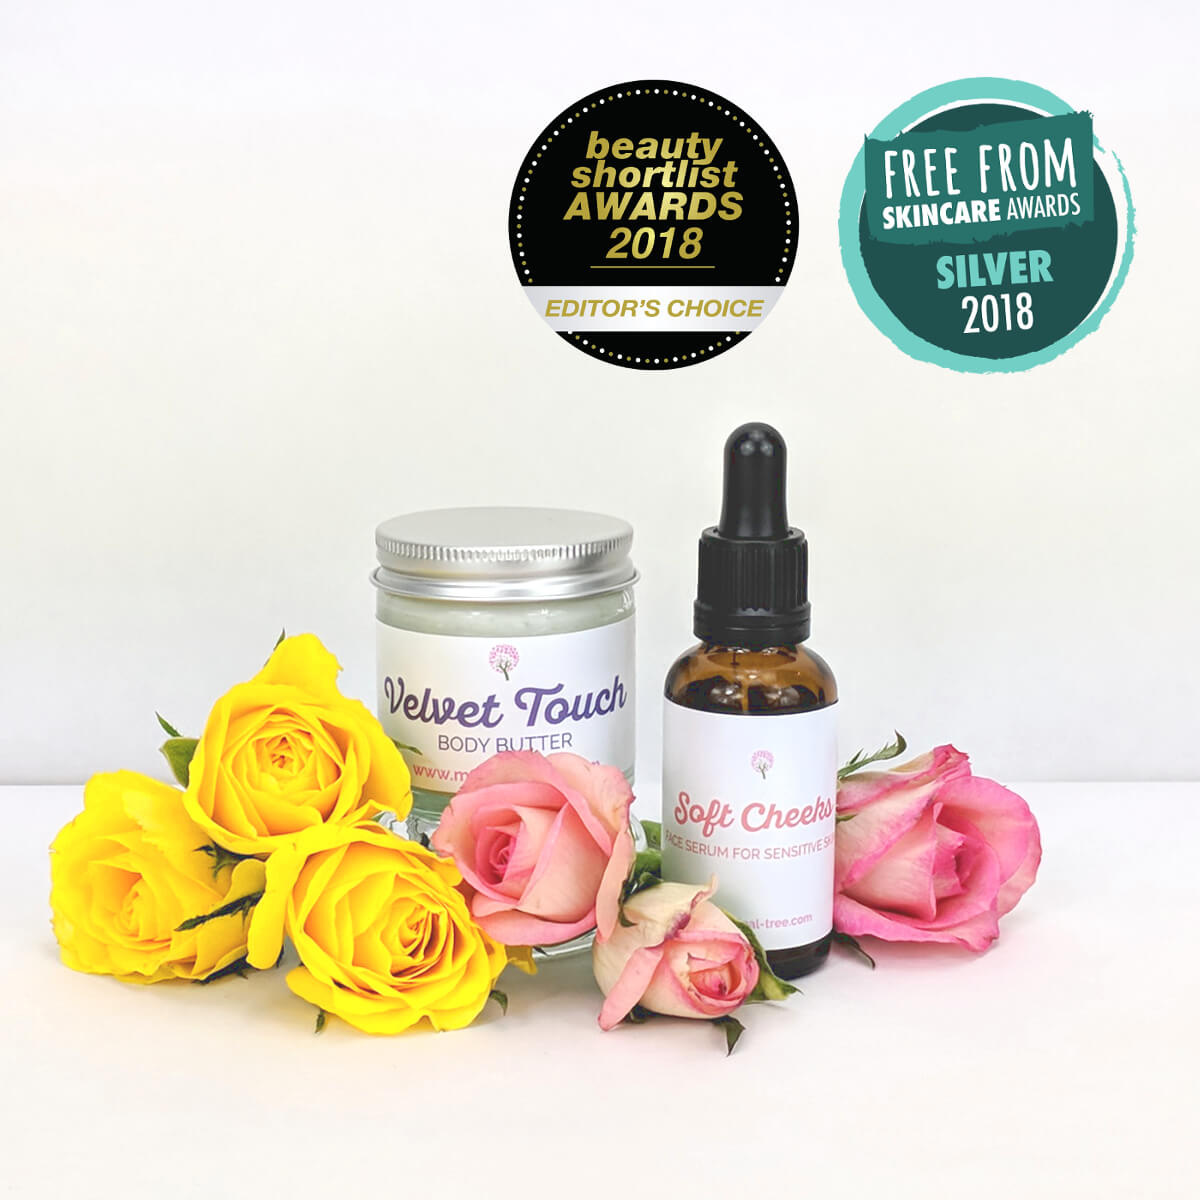 Soft Cheeks Face Serum and Velvet Touch Body Butter with rose and yellow roses